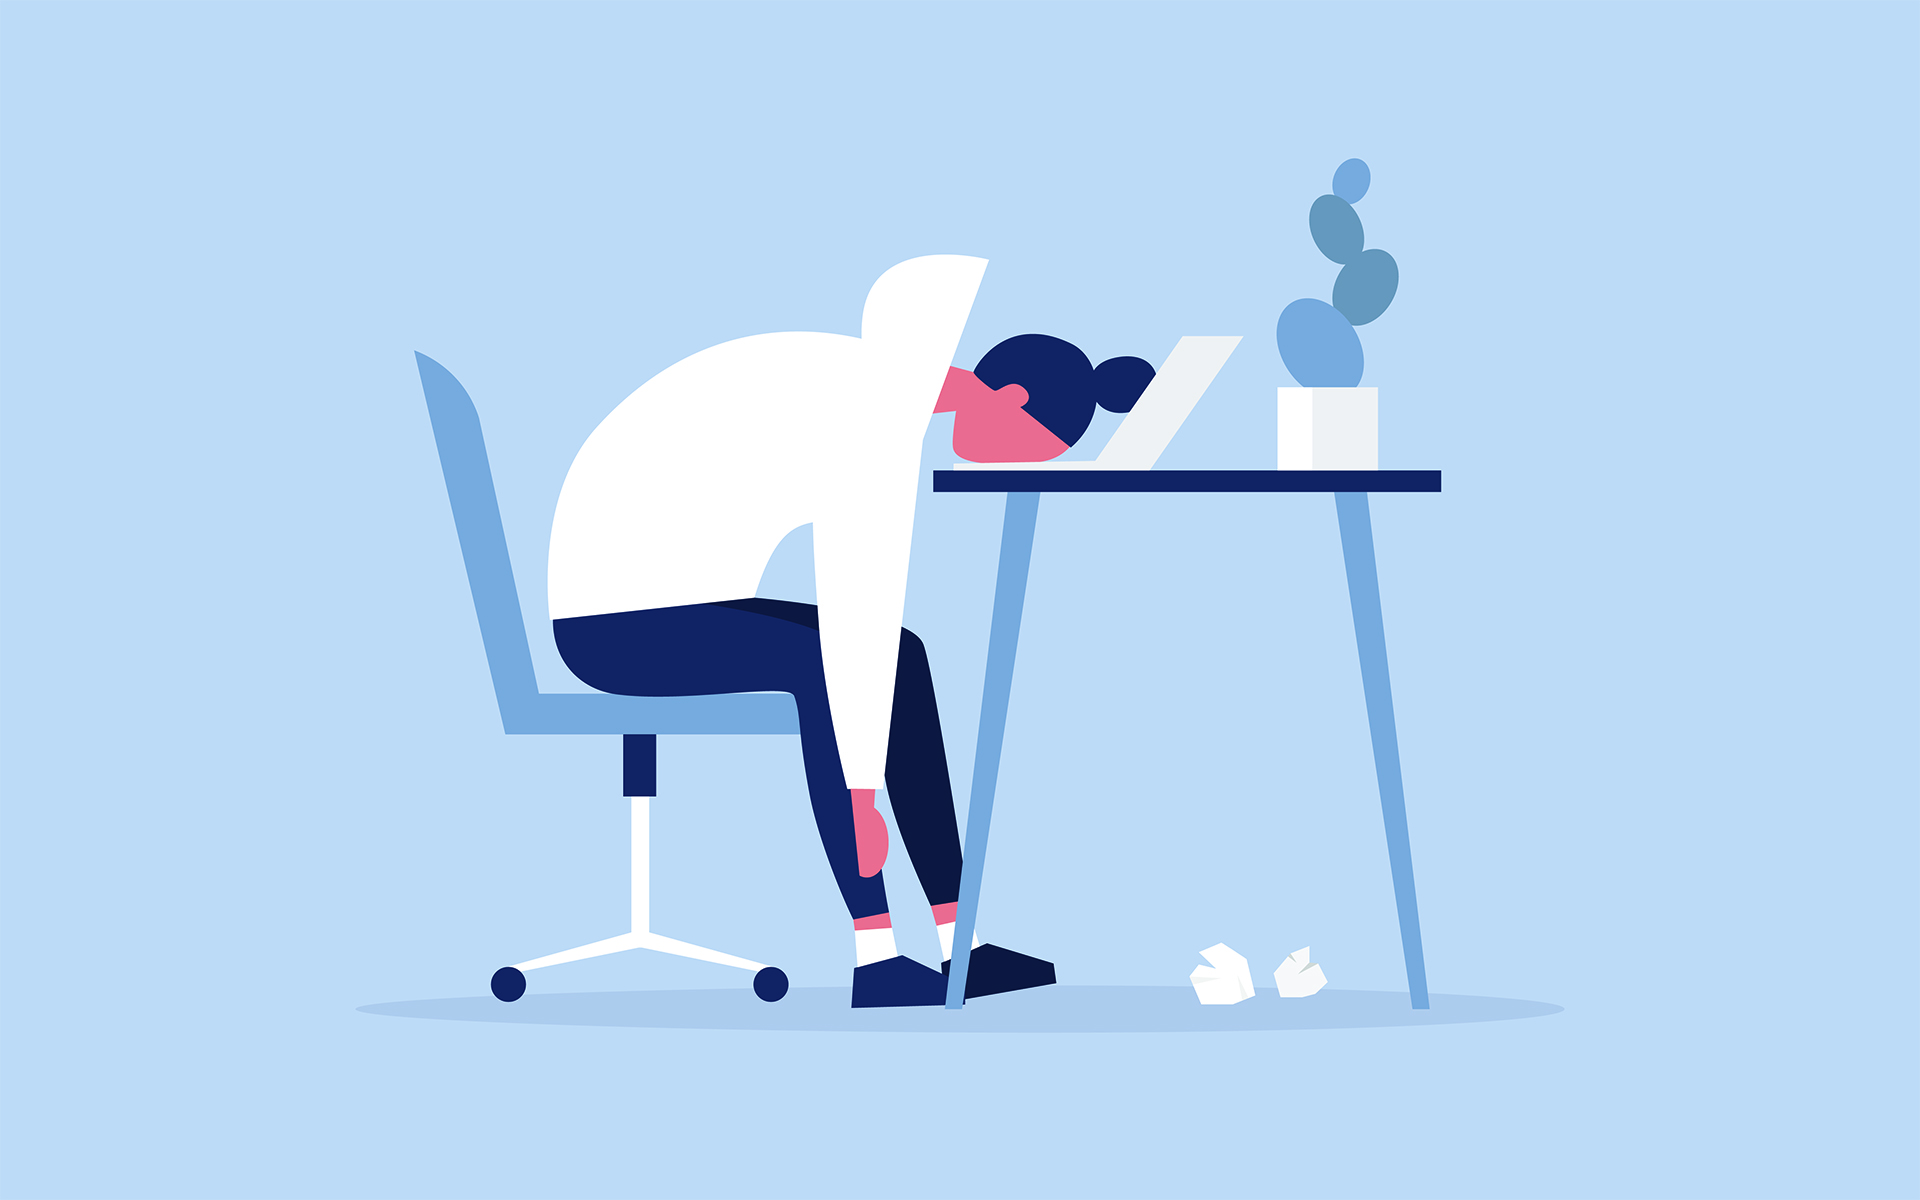 Video chatting exhaustion is real - Illustration of a woman with her head dropped on her keyboard